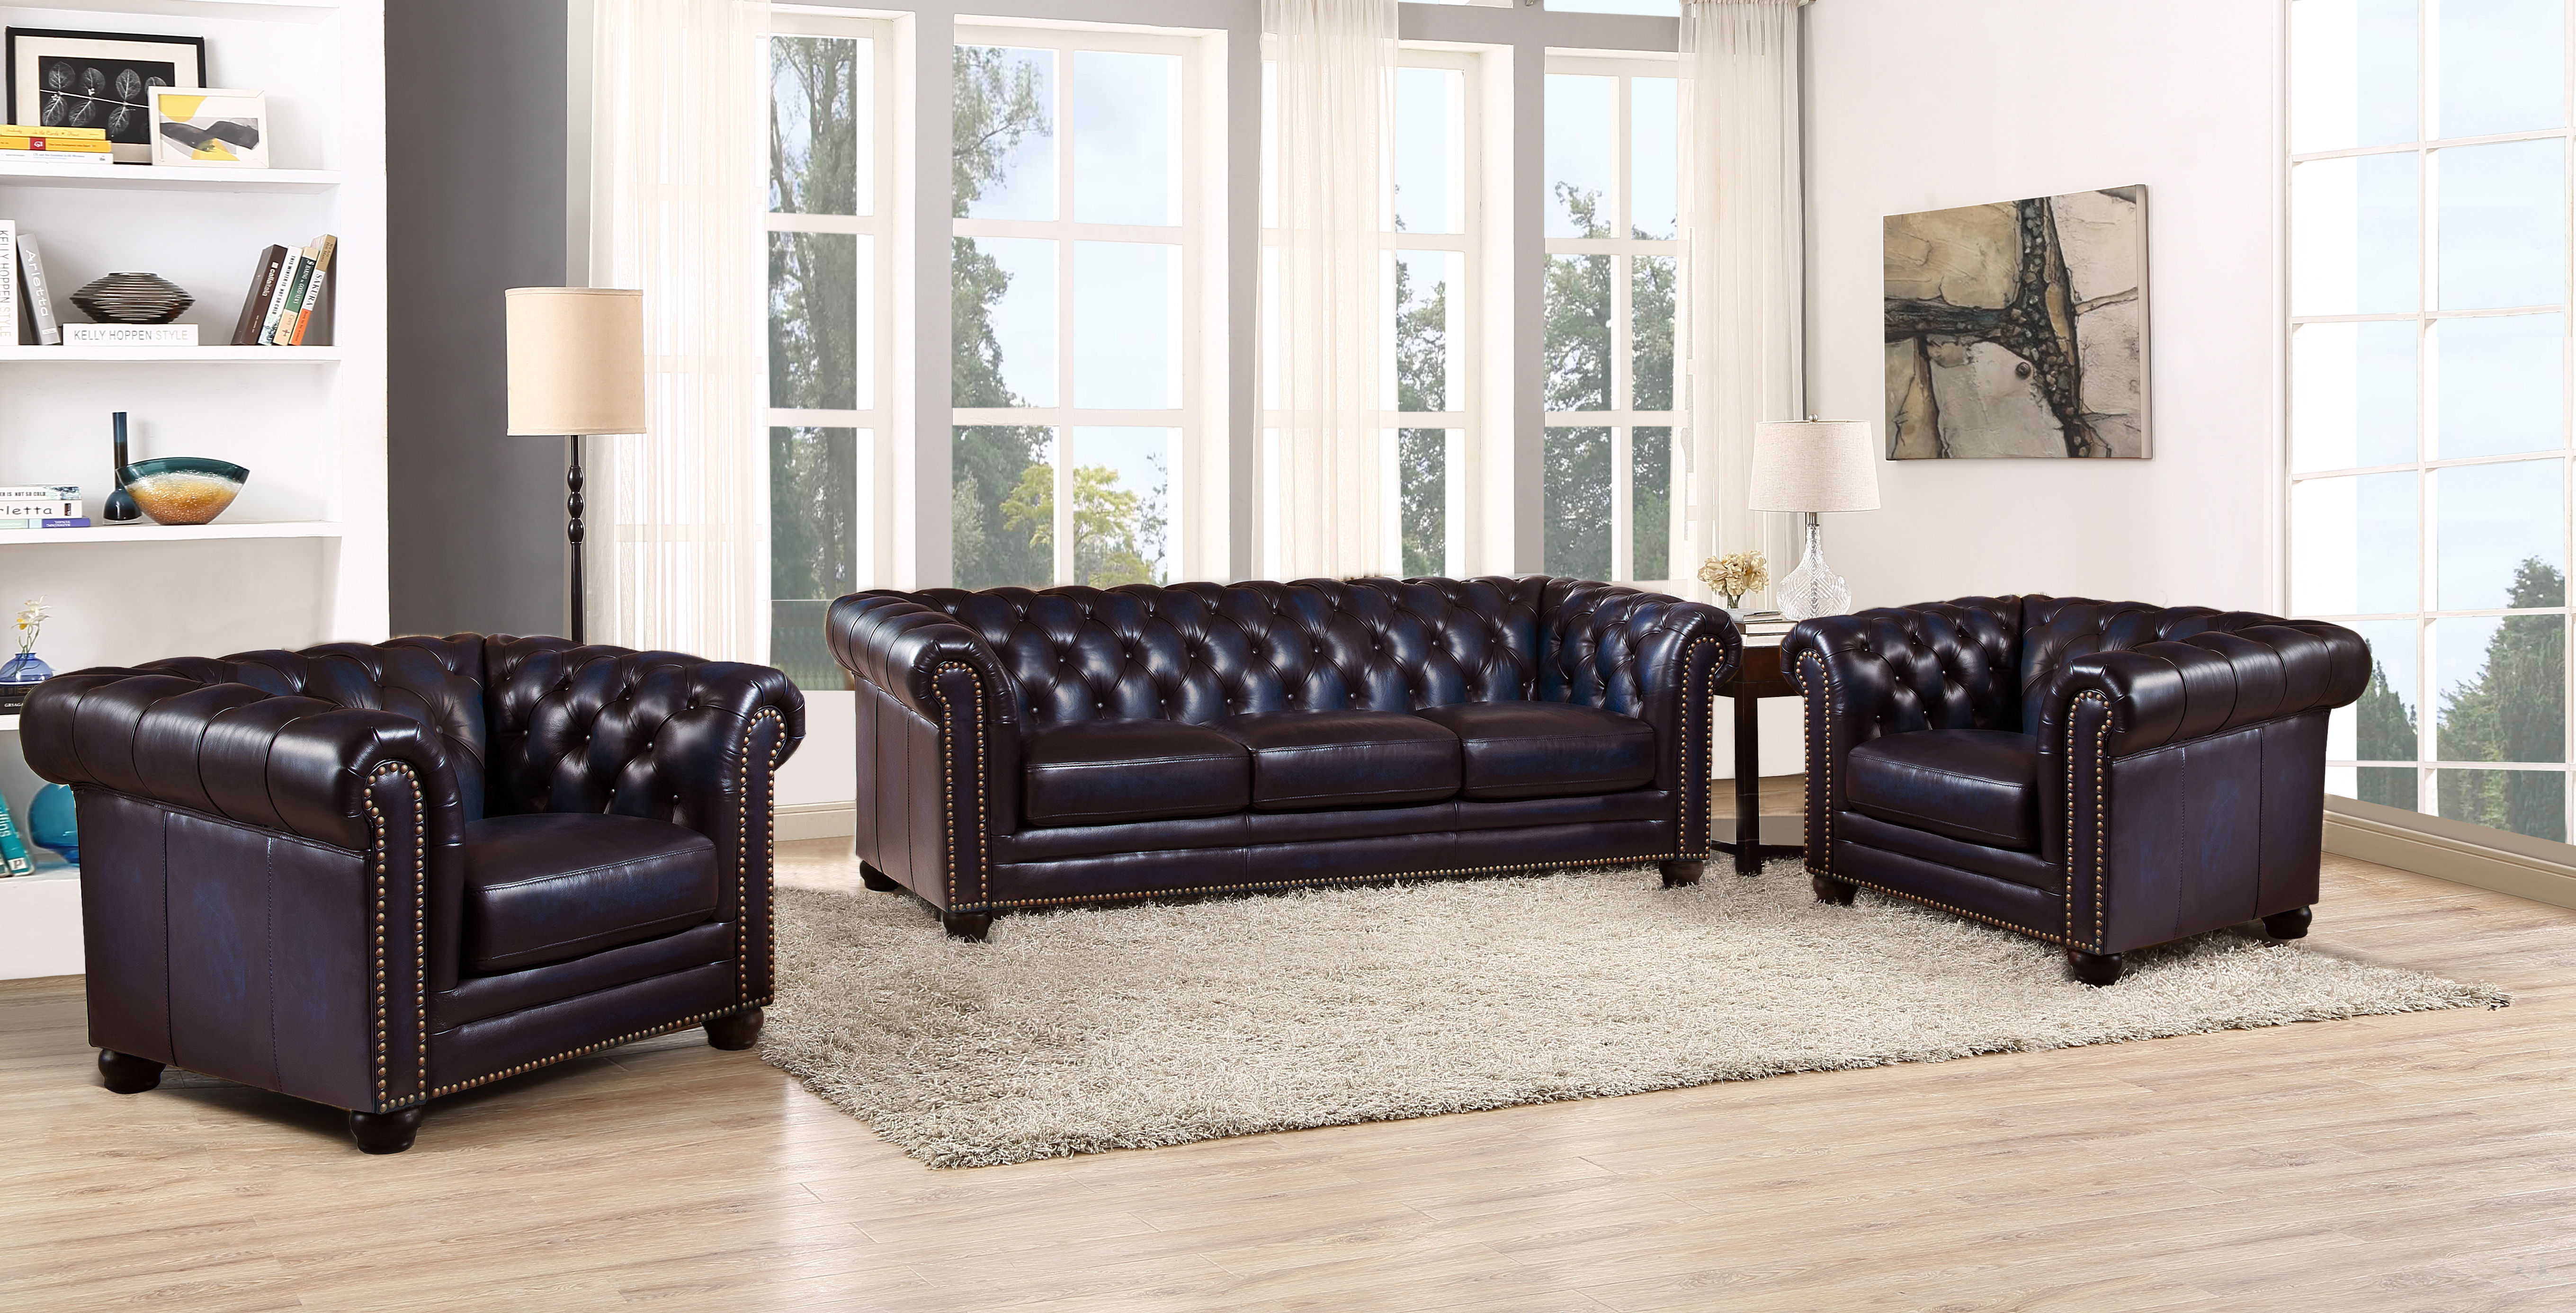 Stupendous Hydeline Dynasty Navy Blue Sofa And Two Chair Set Pabps2019 Chair Design Images Pabps2019Com